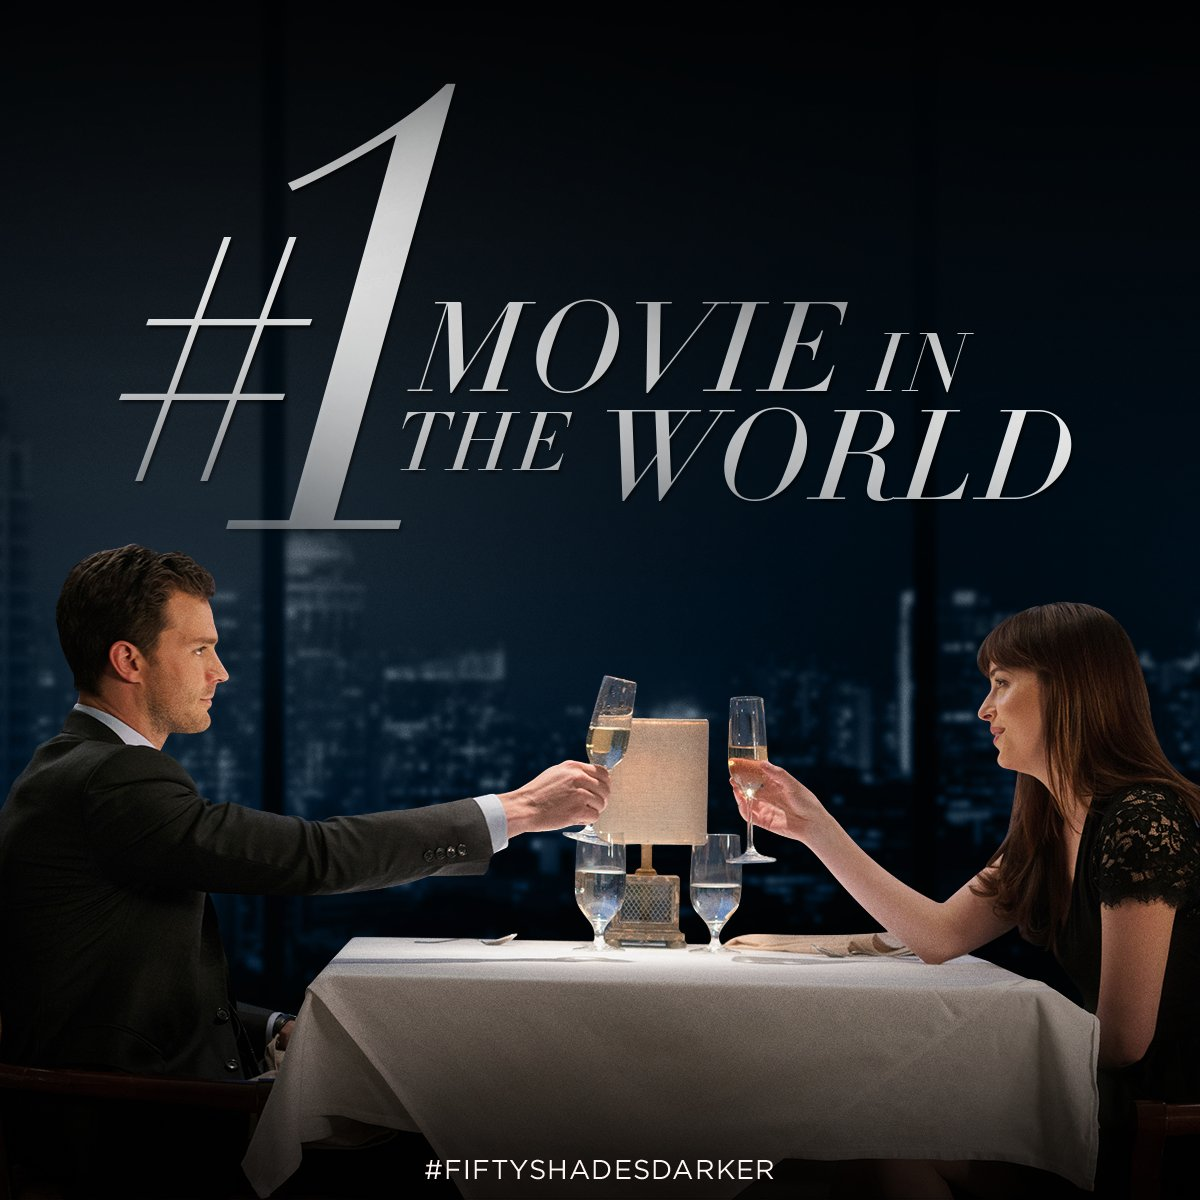 RT @FiftyShades: Make your evening #FiftyShadesDarker and see the #1 movie in the World. https://t.co/SjtEjiAT3G https://t.co/gY6H6SaKjJ